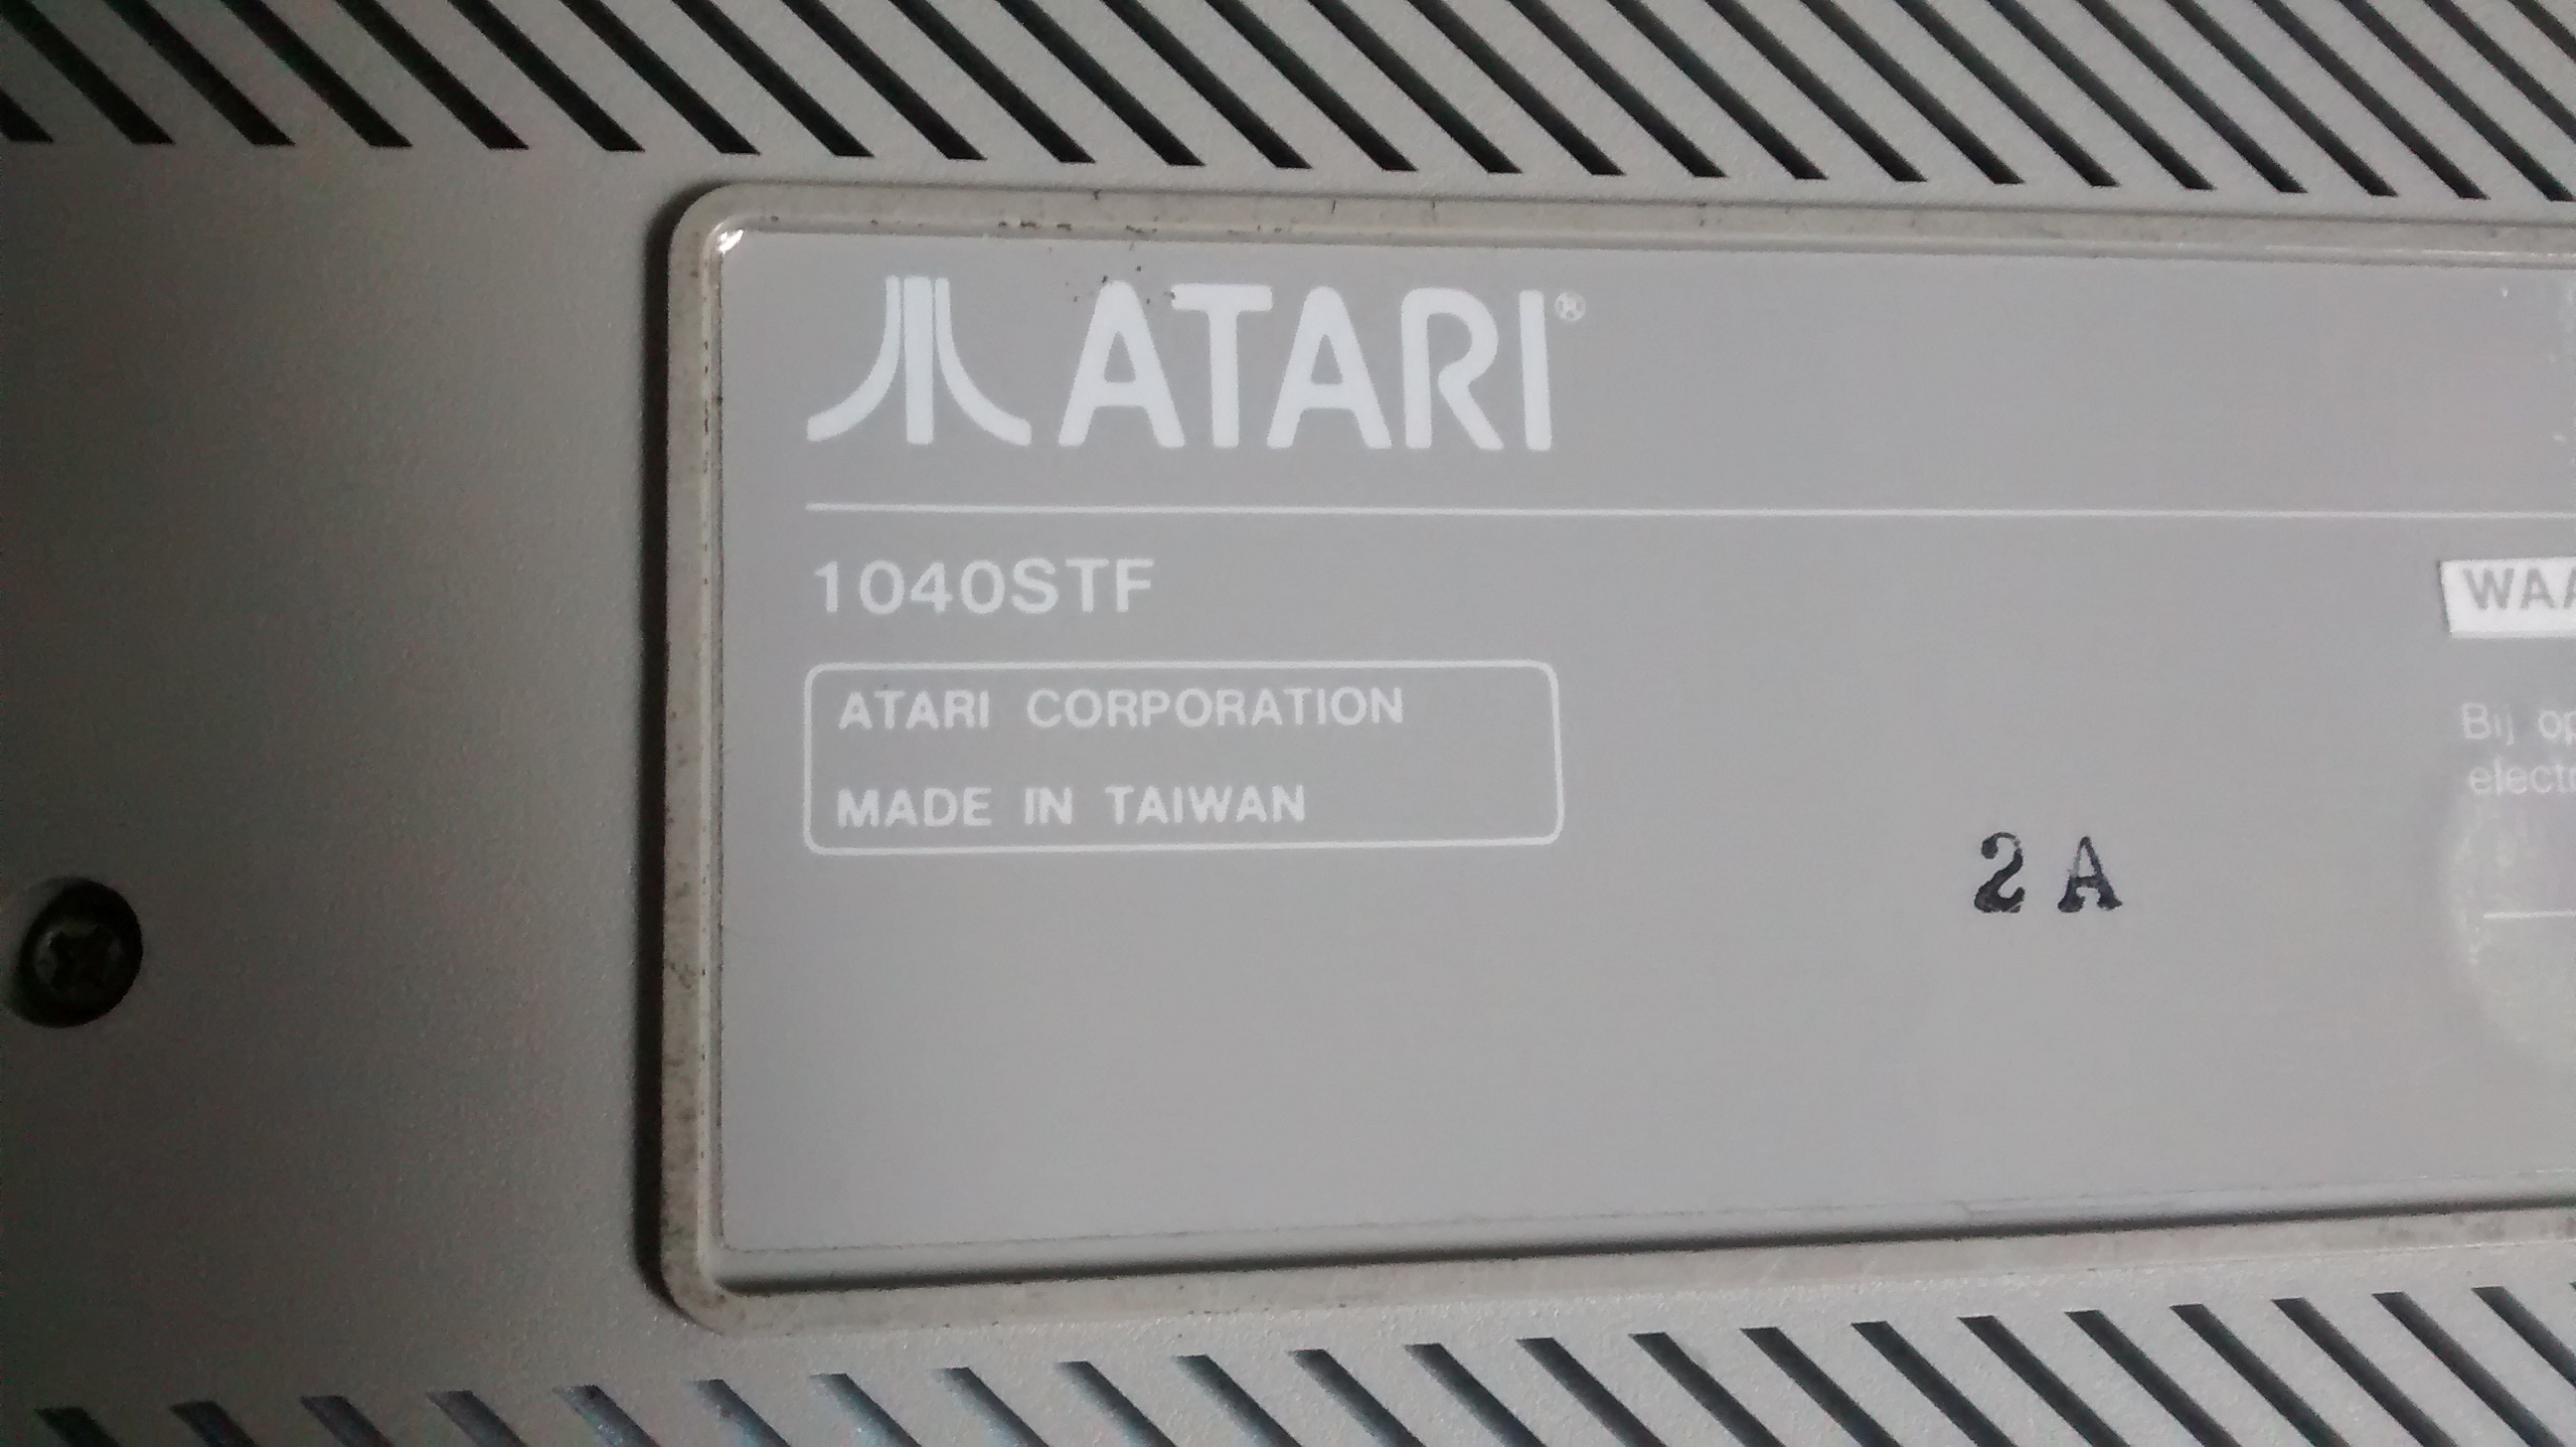 Atari 1040ST Backgrounds, Compatible - PC, Mobile, Gadgets| 2592x1456 px